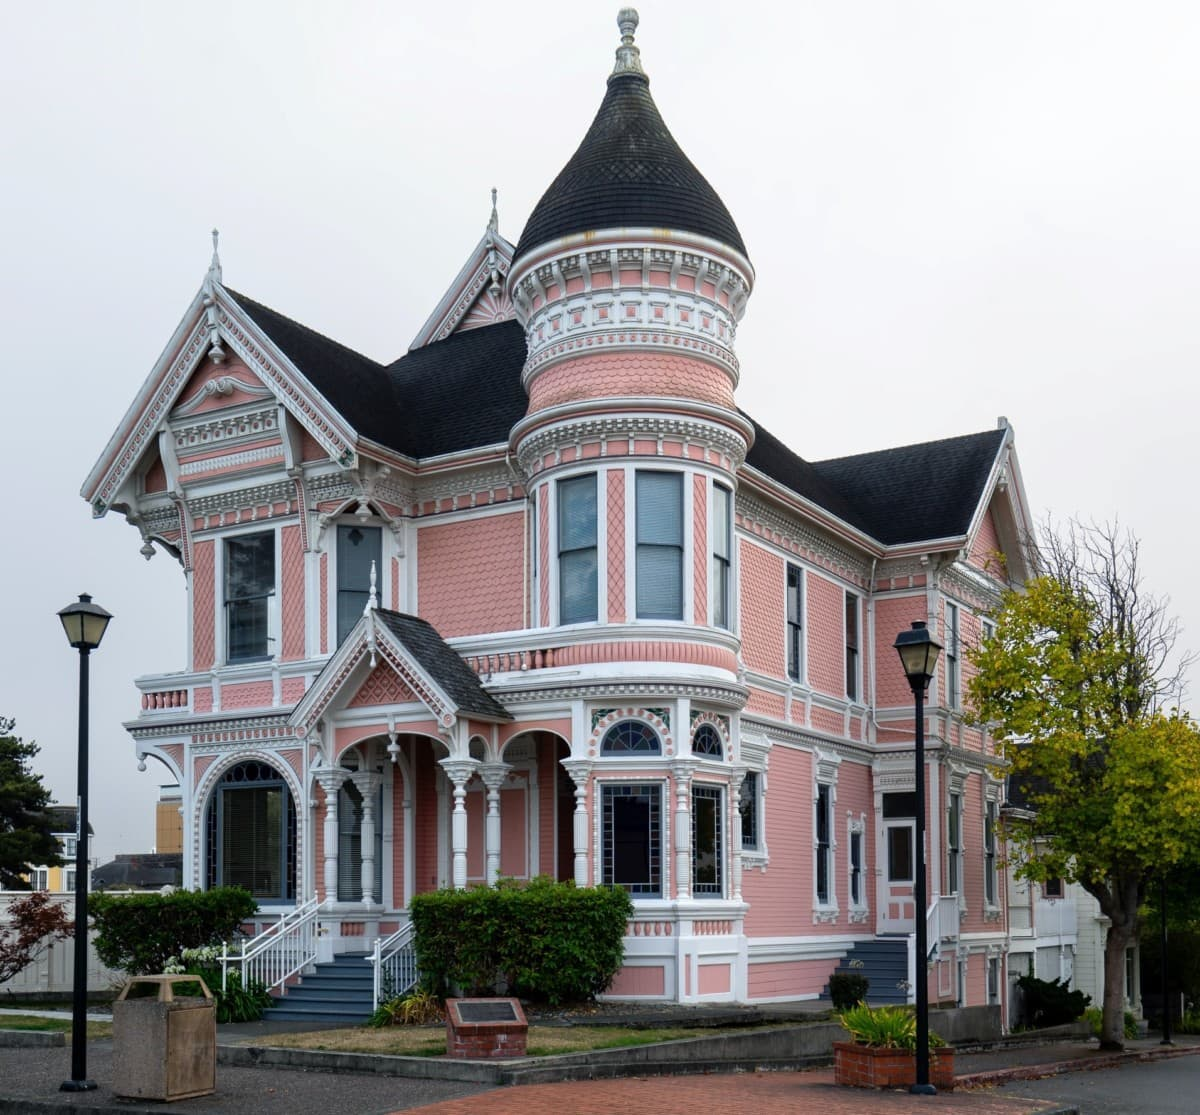 Two-story, pink victorian style home with white trim and round tower